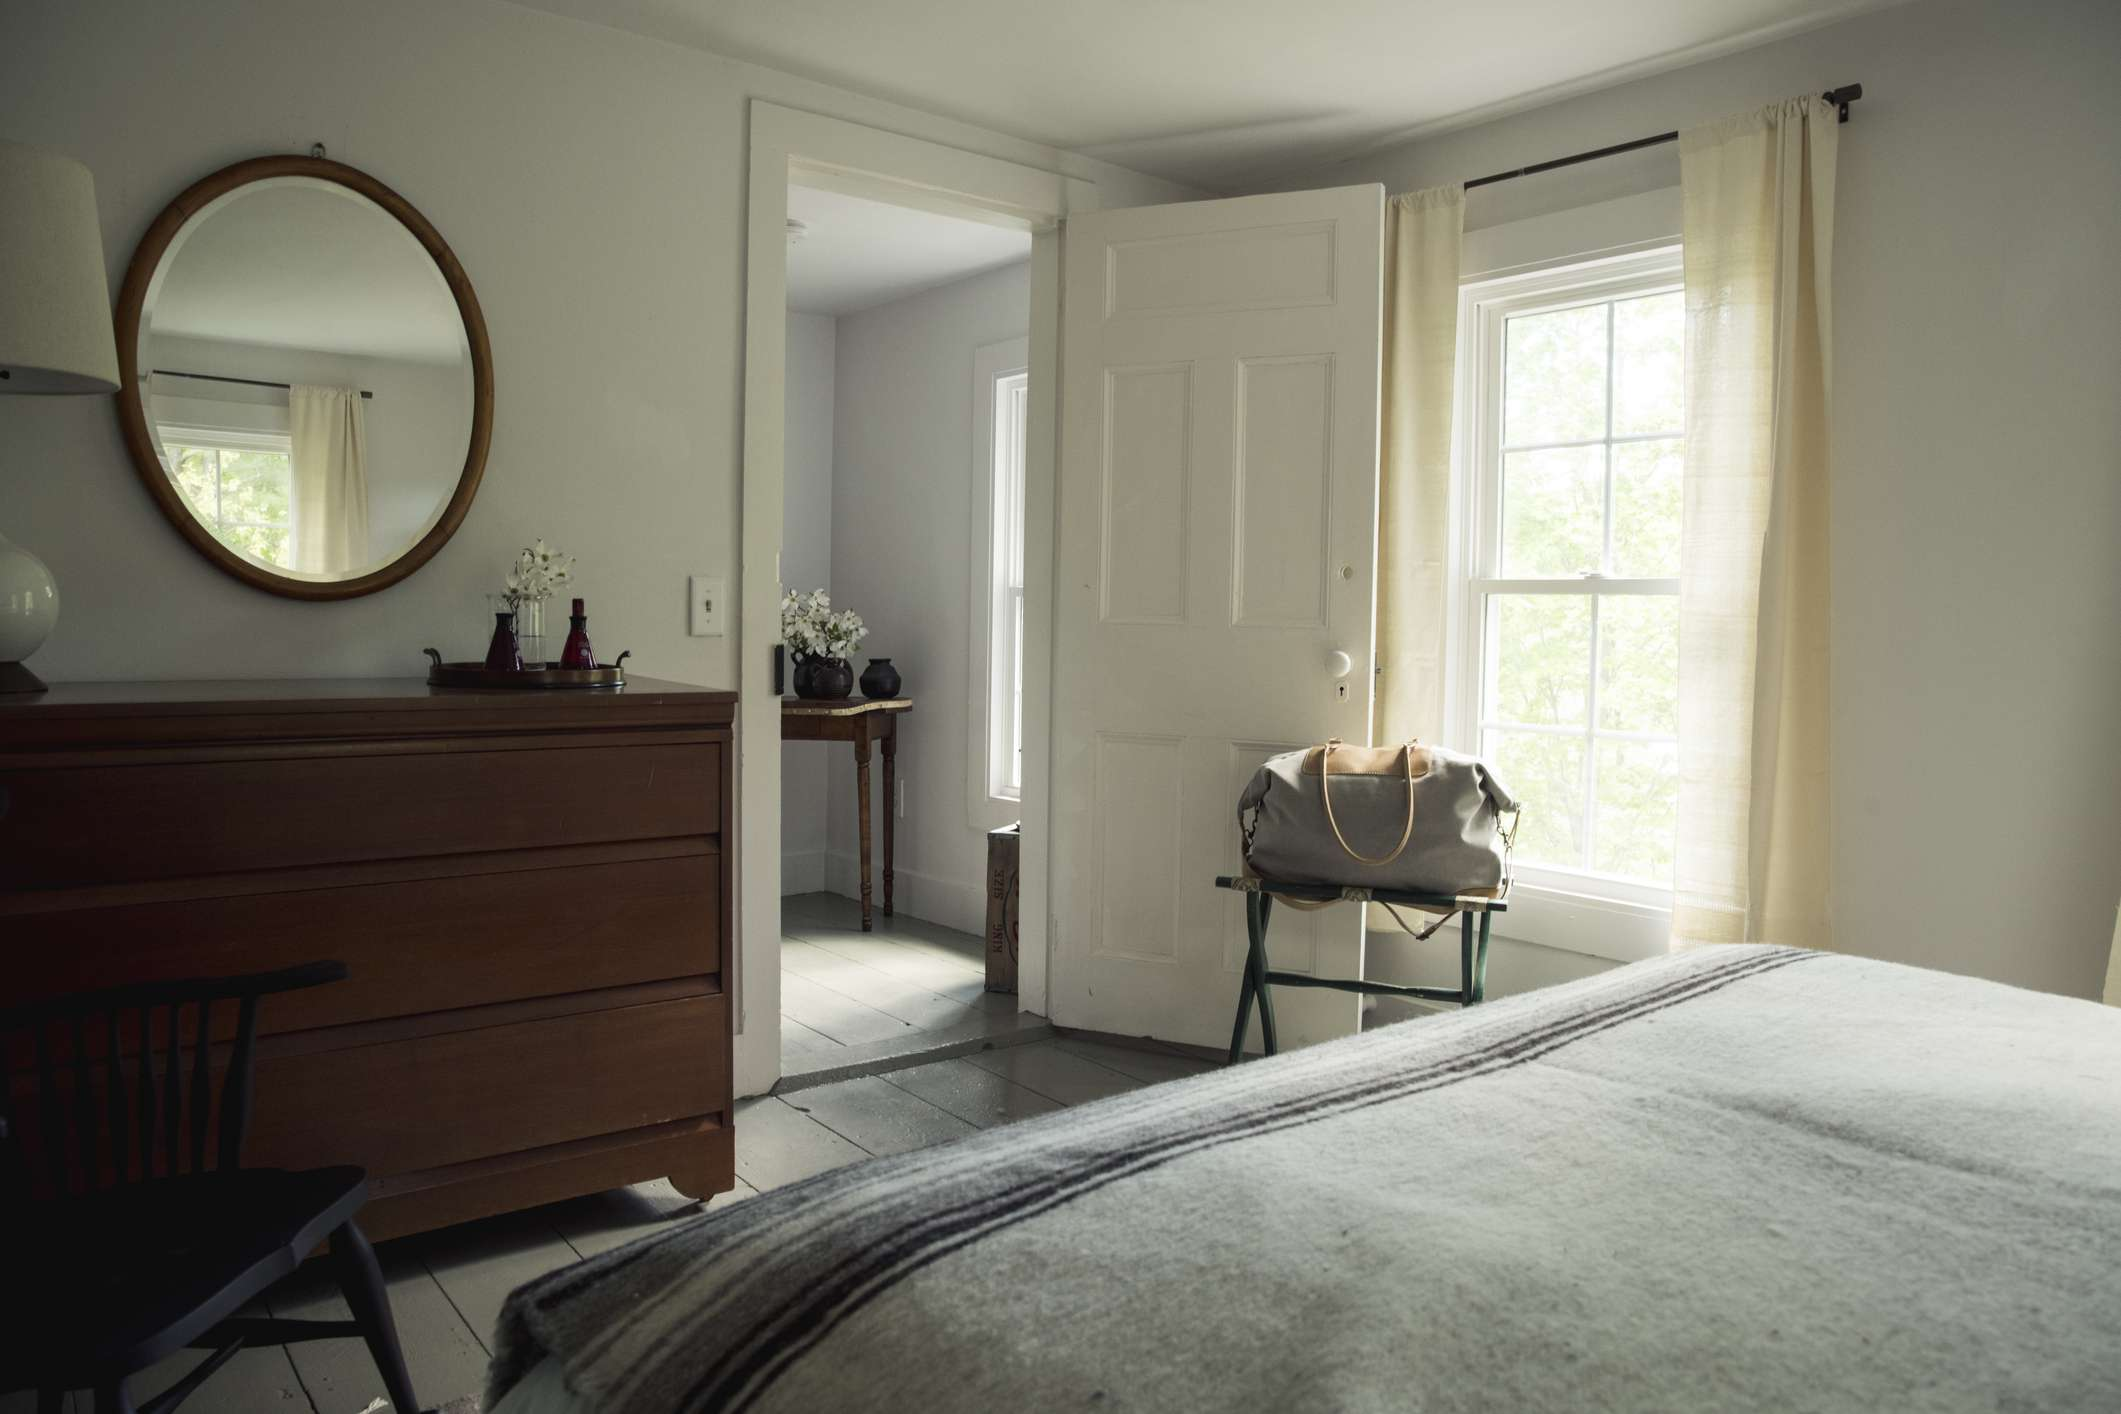 bedroom in a country house with a mirror